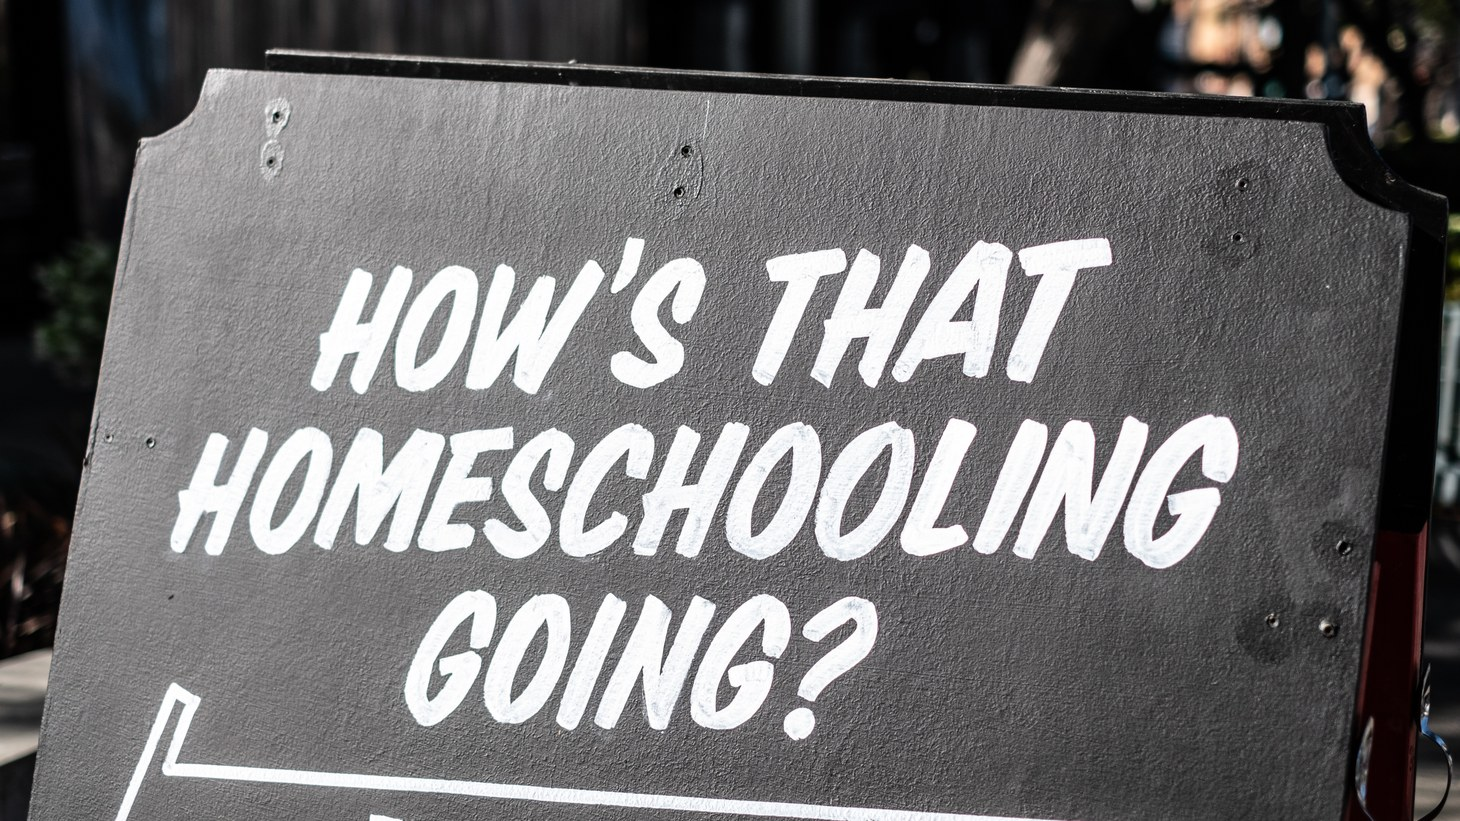 "A sign in Culver City says, ""How's that homeschooling going?"" For some LAUSD students, they don't have laptops, fast internet, a work station, or enough quiet space at home for learning."